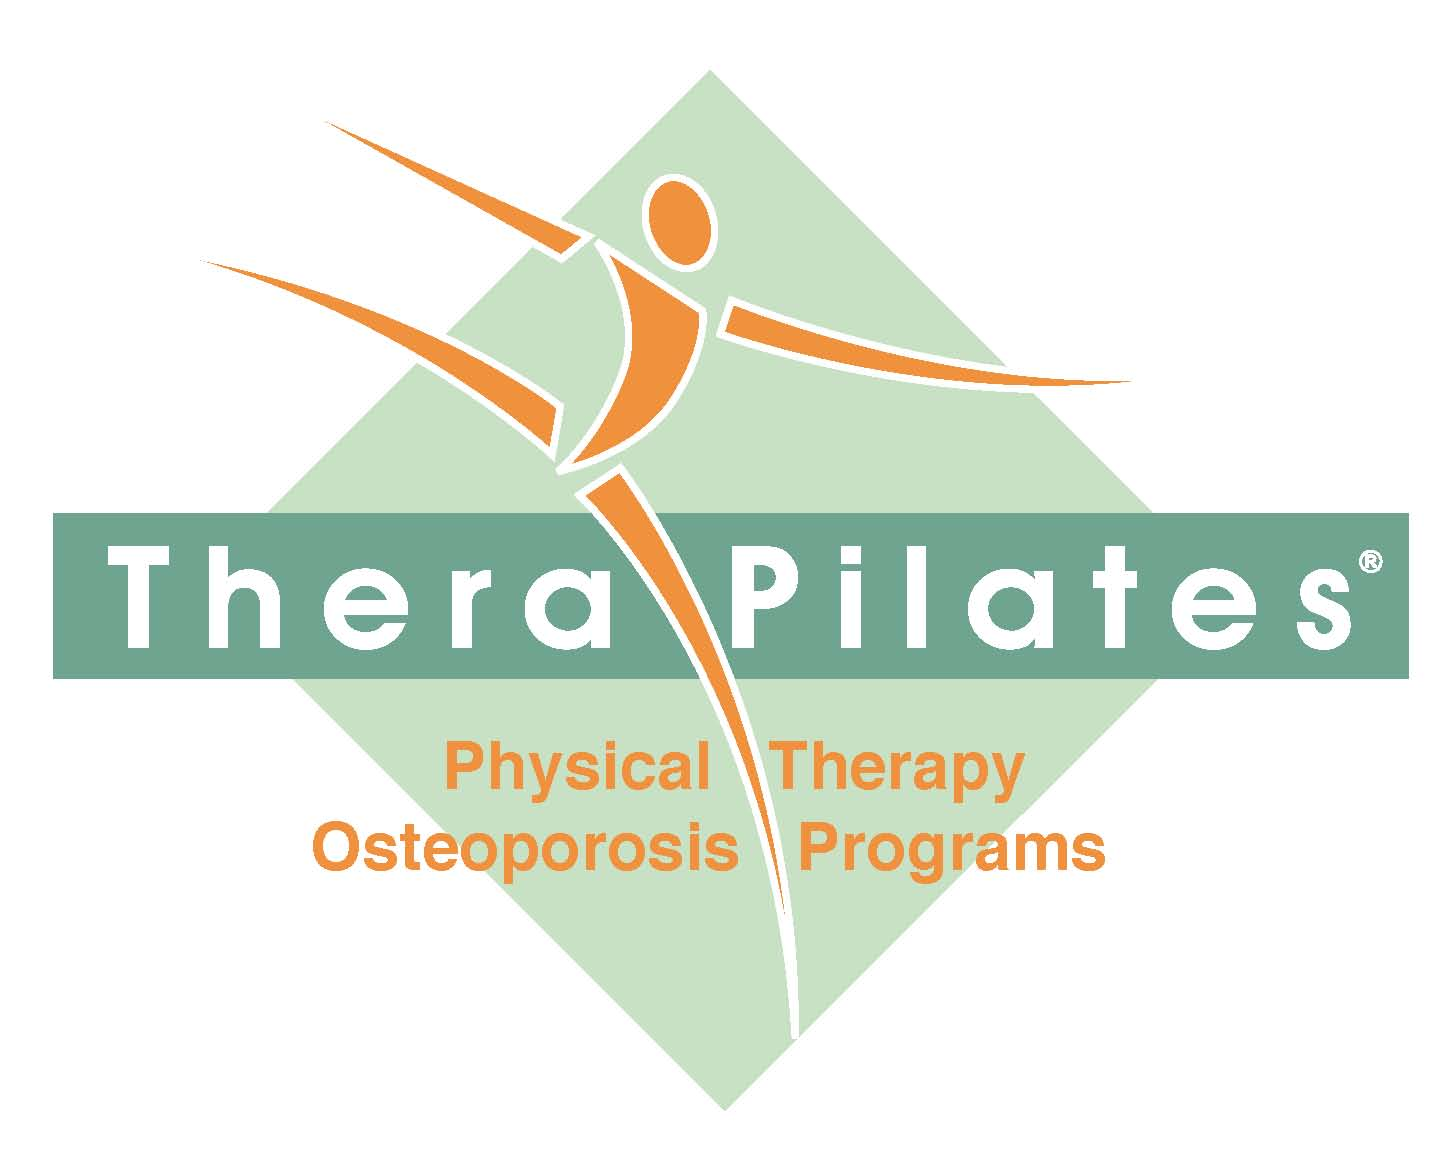 Therapilates logo